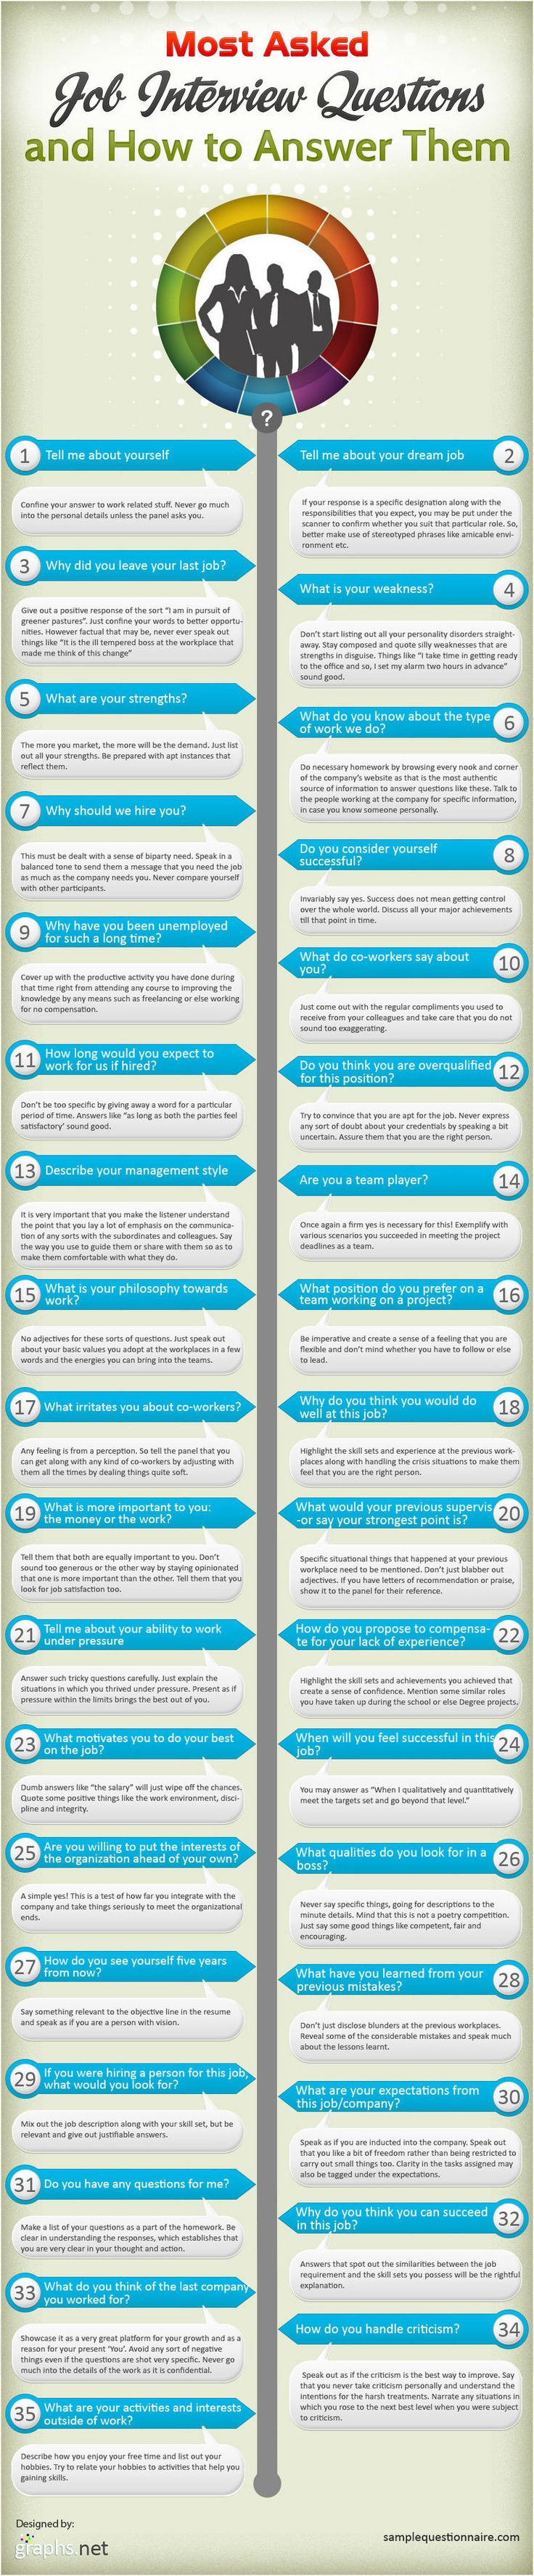 35 Most Asked Job Interview Questions and How to Answer Them